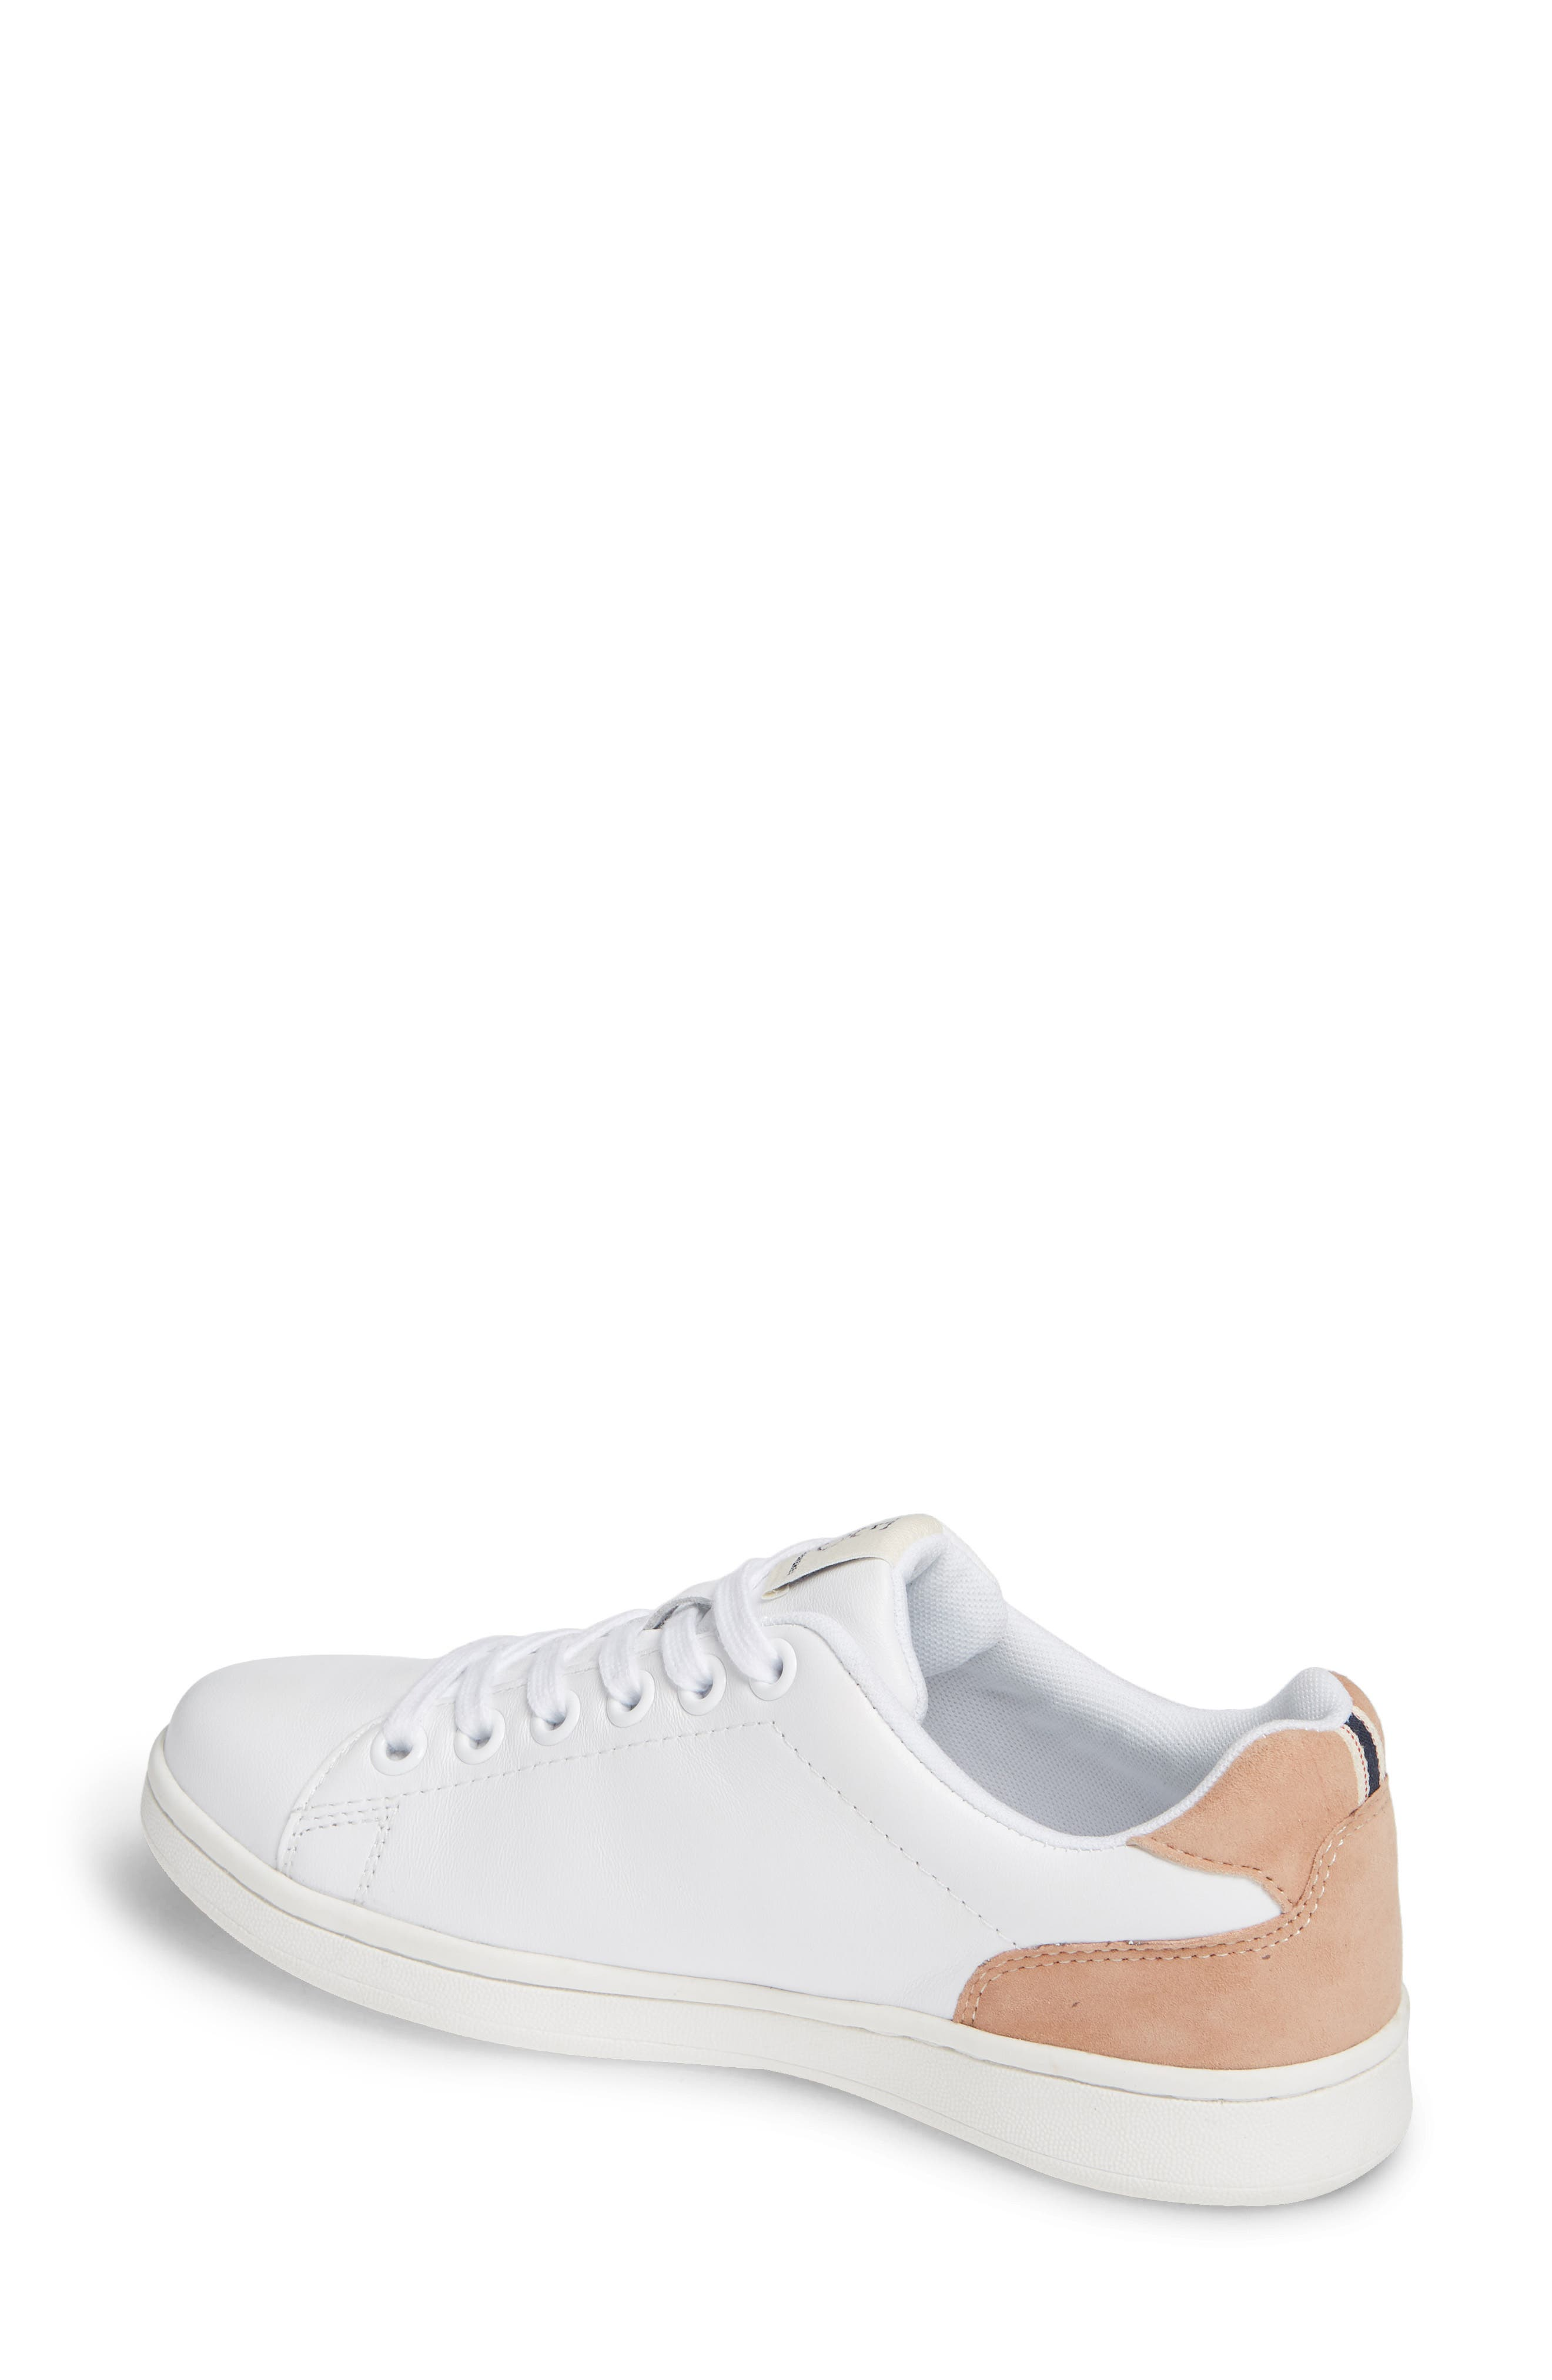 Chapatcha Sneaker,                             Alternate thumbnail 2, color,                             PURE WHITE FABRIC